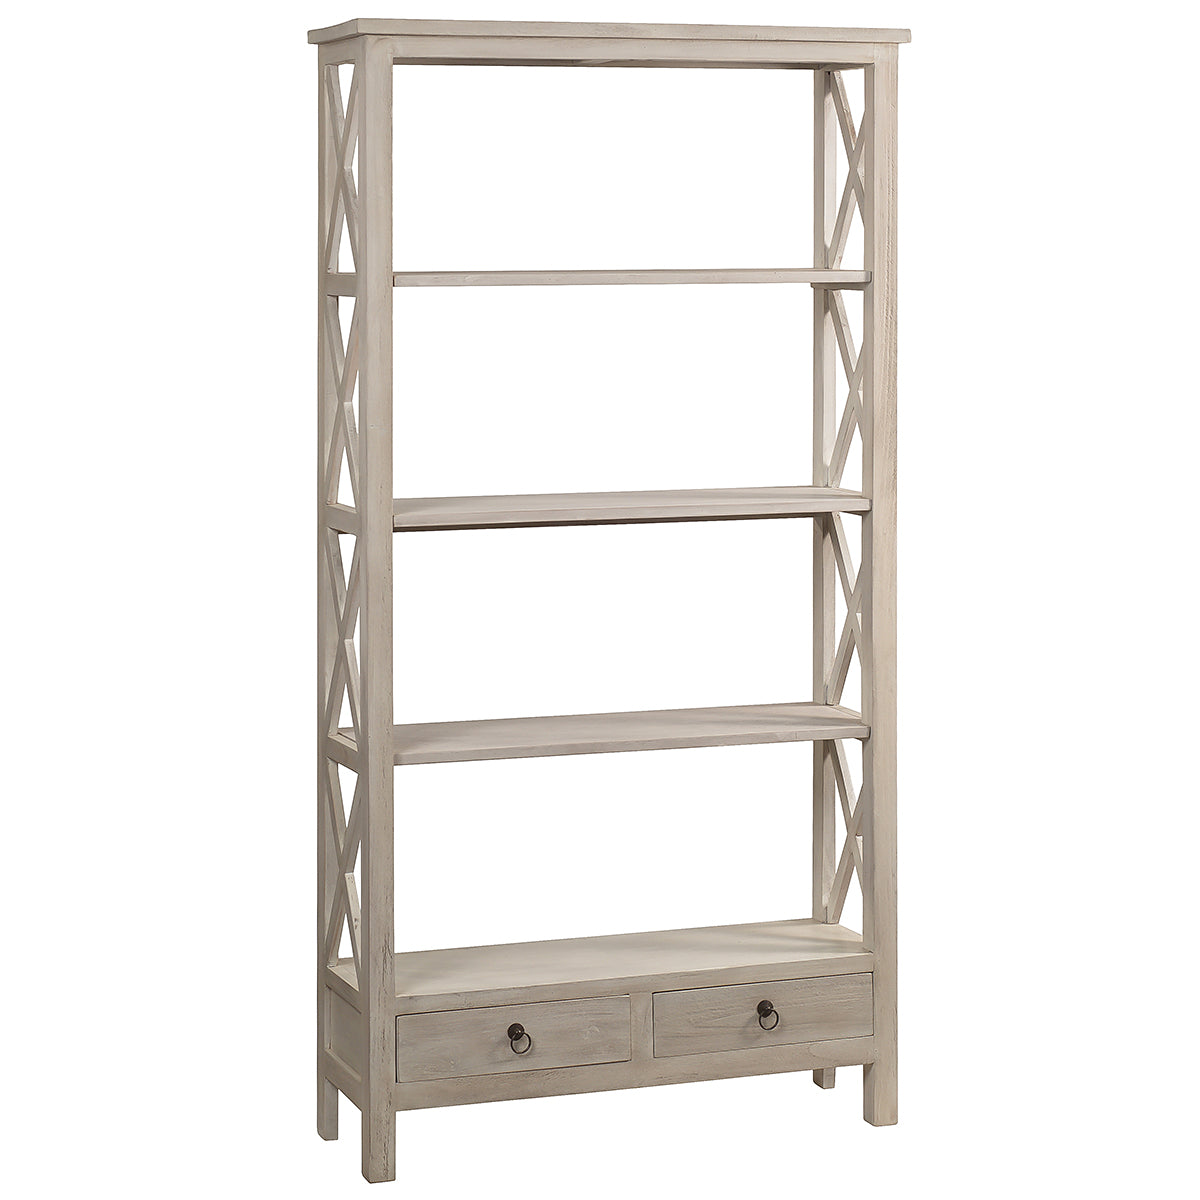 washed white chic bookcases image rustic whitewash library bookcase shabby ladder whitewashedwash with